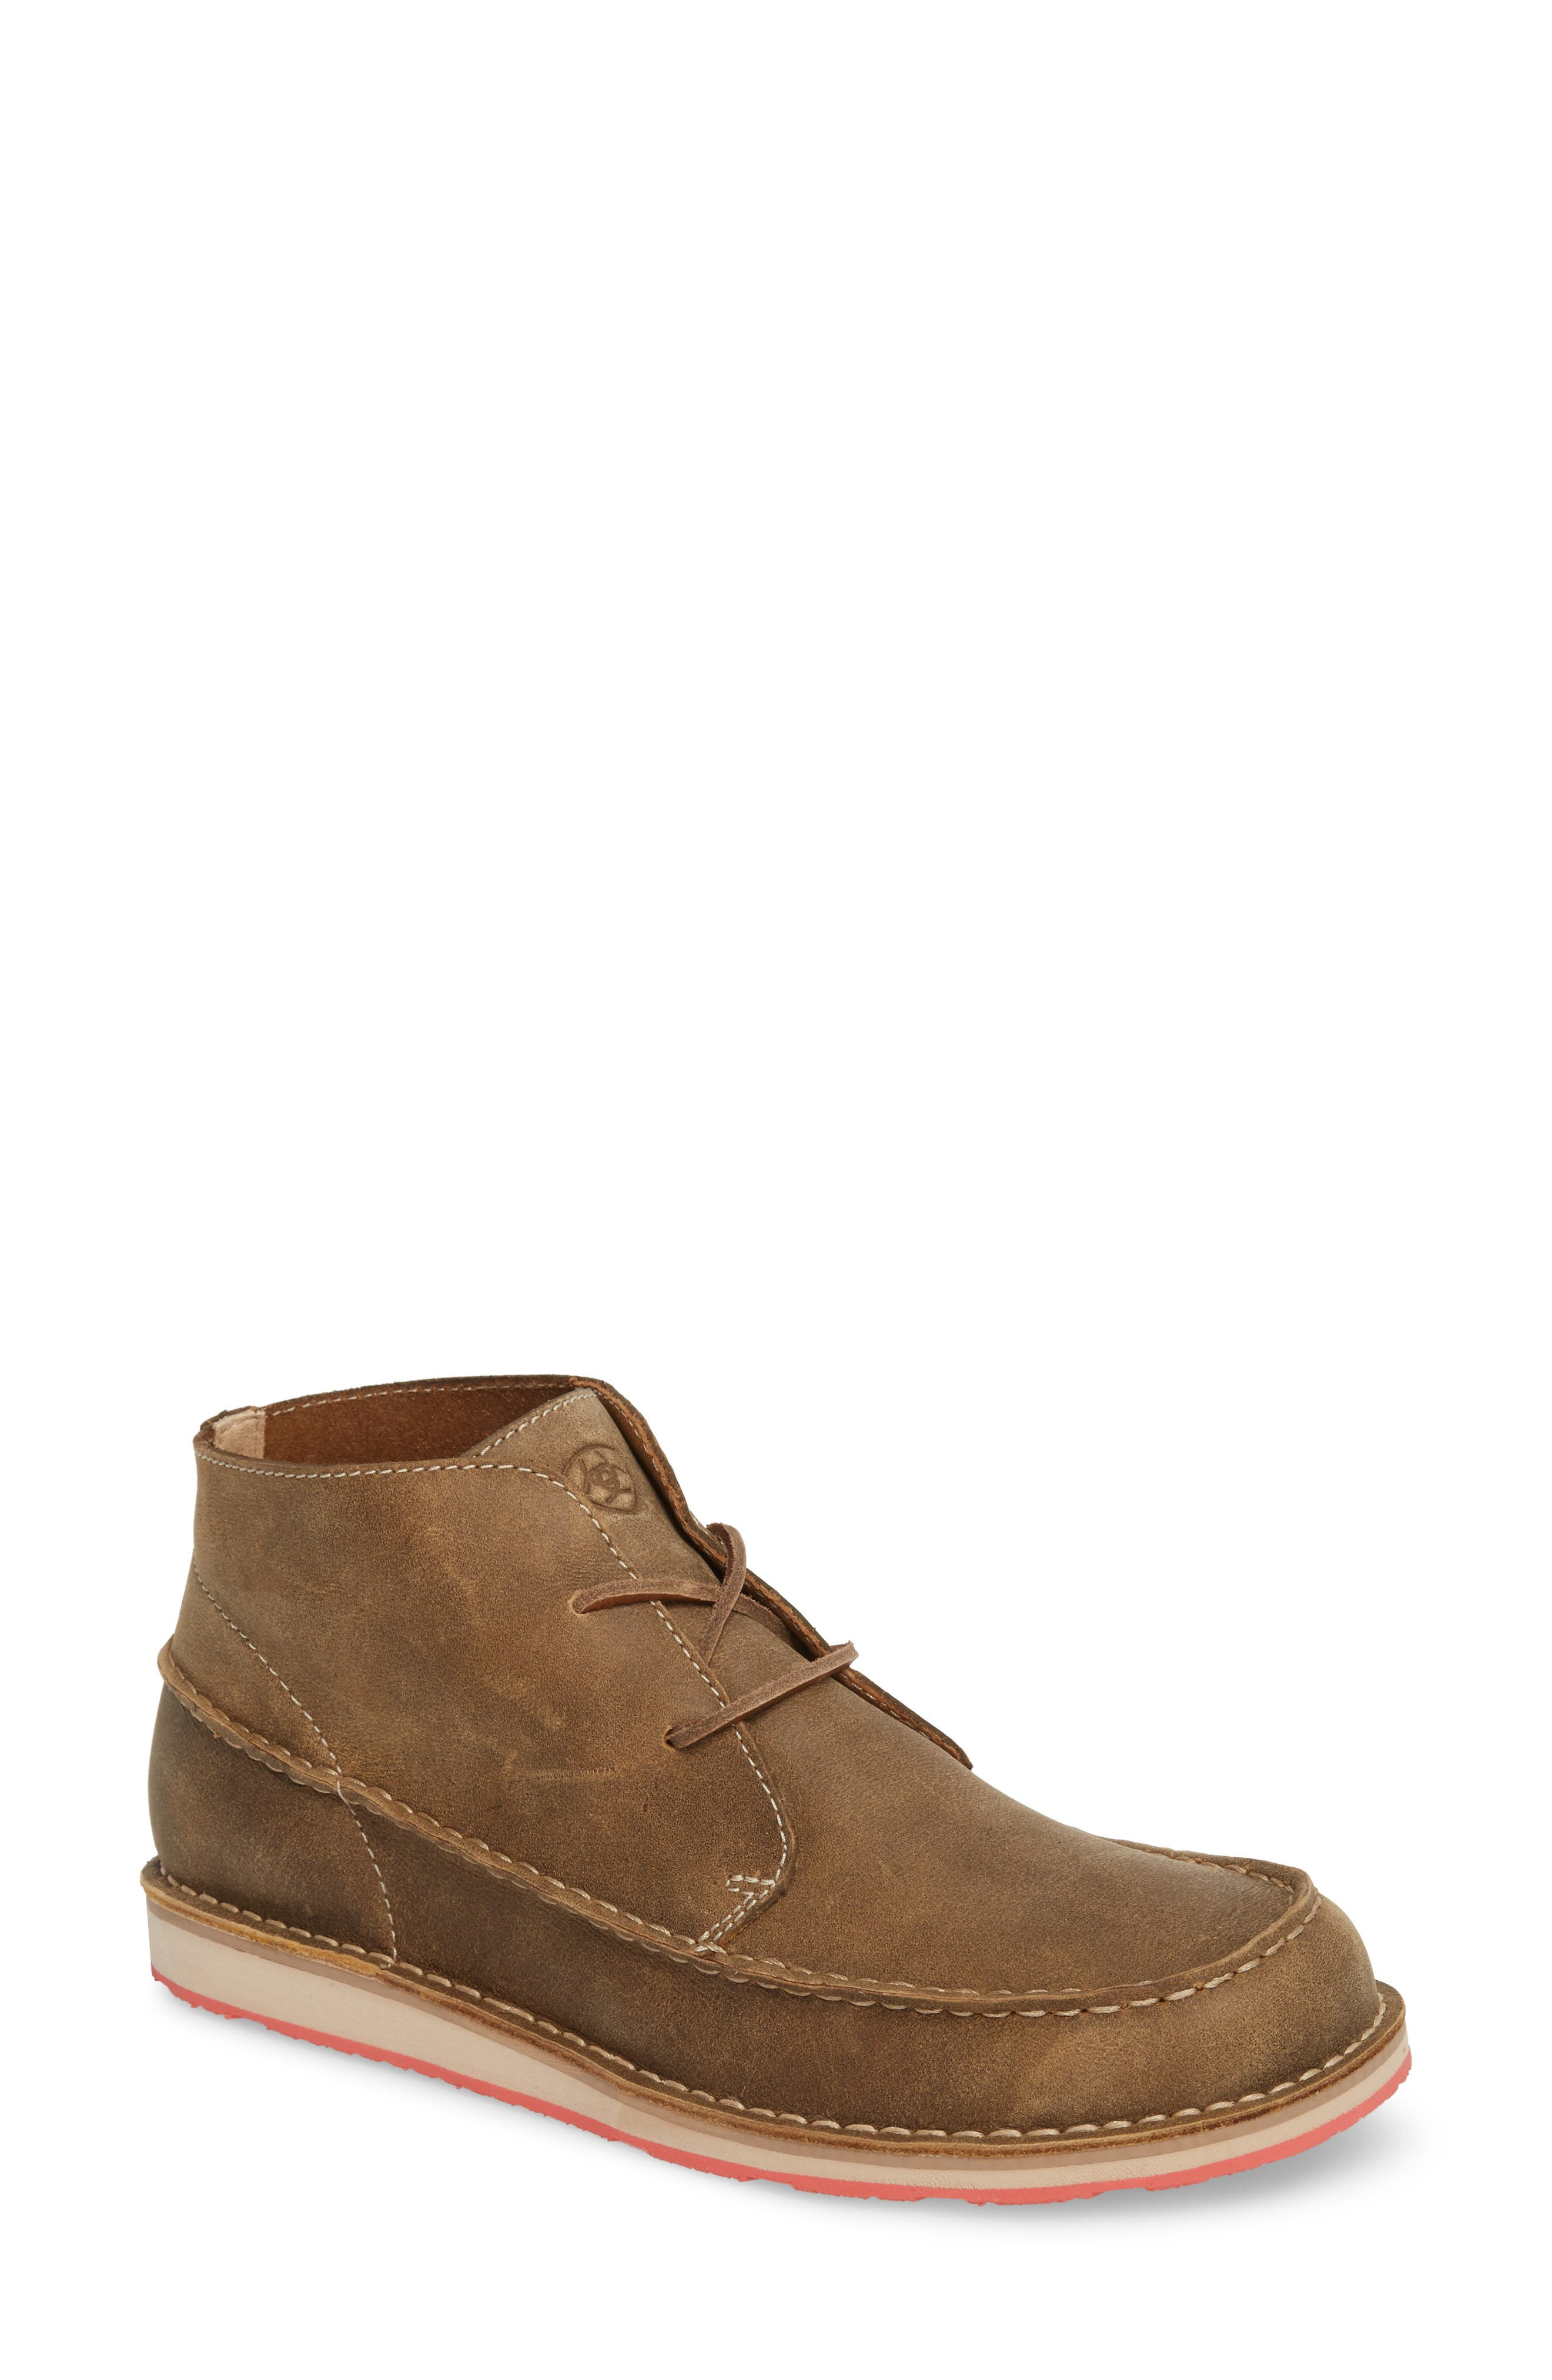 Cruiser Chukka Boot,                             Main thumbnail 1, color,                             Lace Brown Bomber Leather